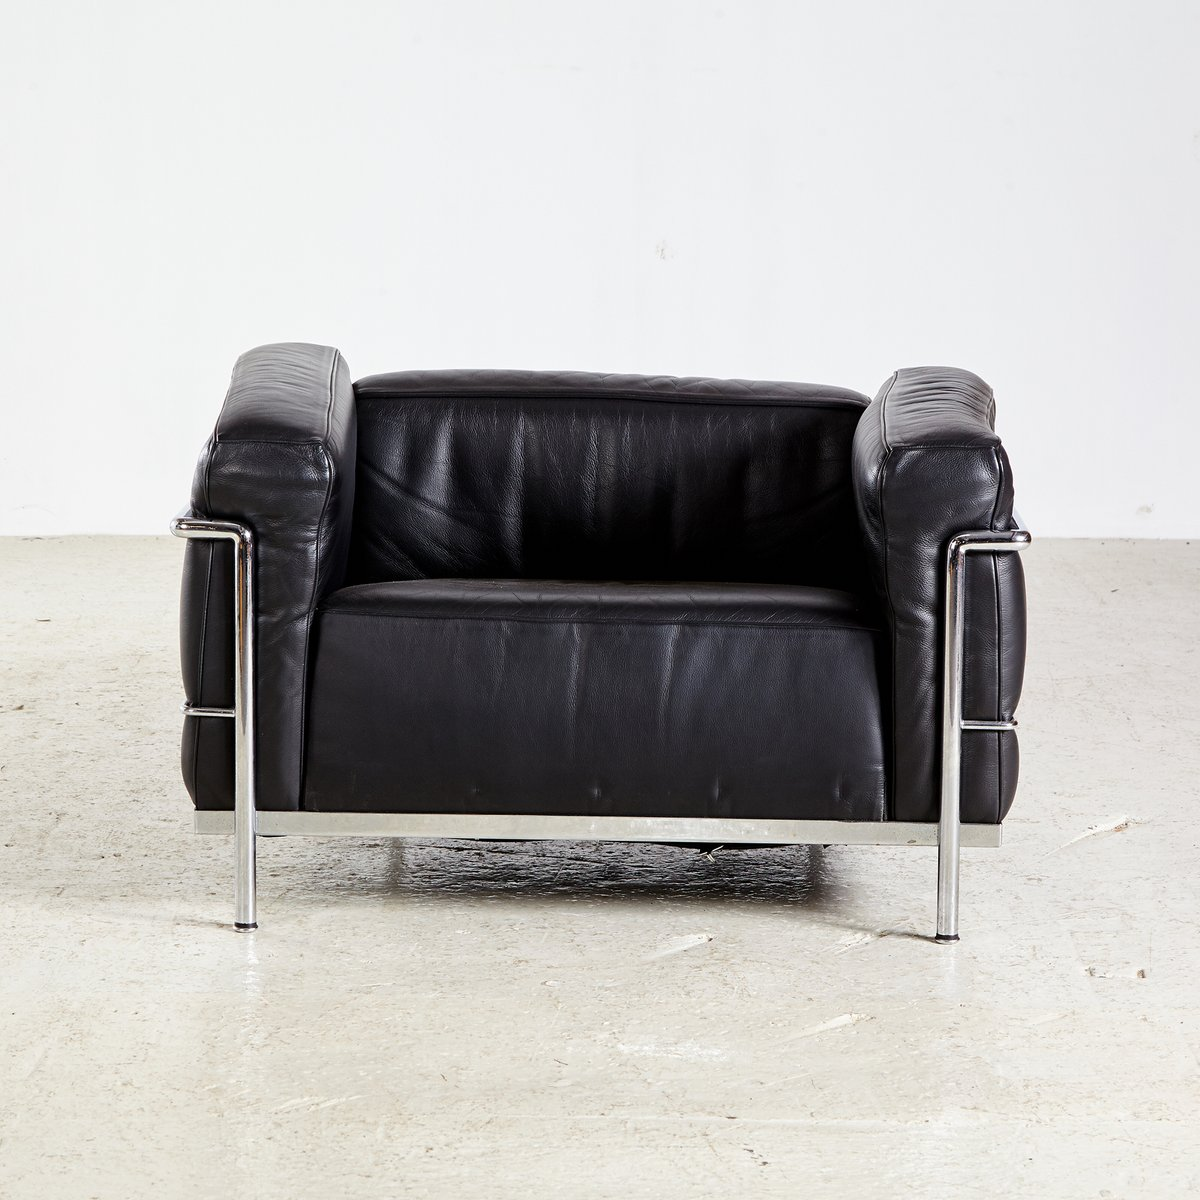 Vintage Lc3 Armchair By Le Corbusier For Cassina For Sale At Pamono